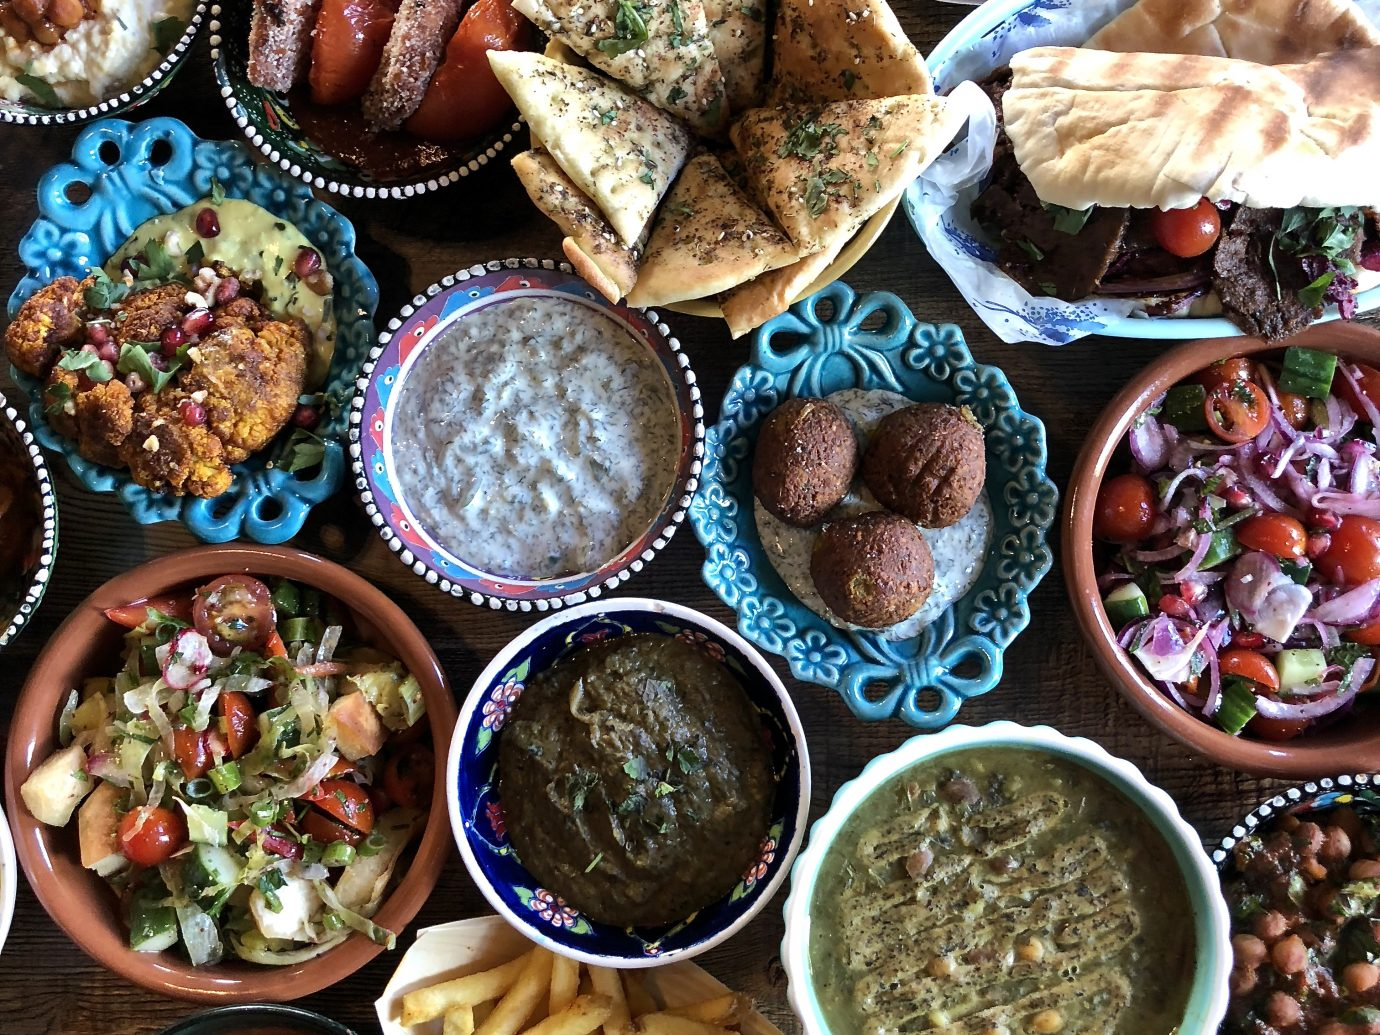 numerous delicious vegan dishes from Koocha Mezze Bar